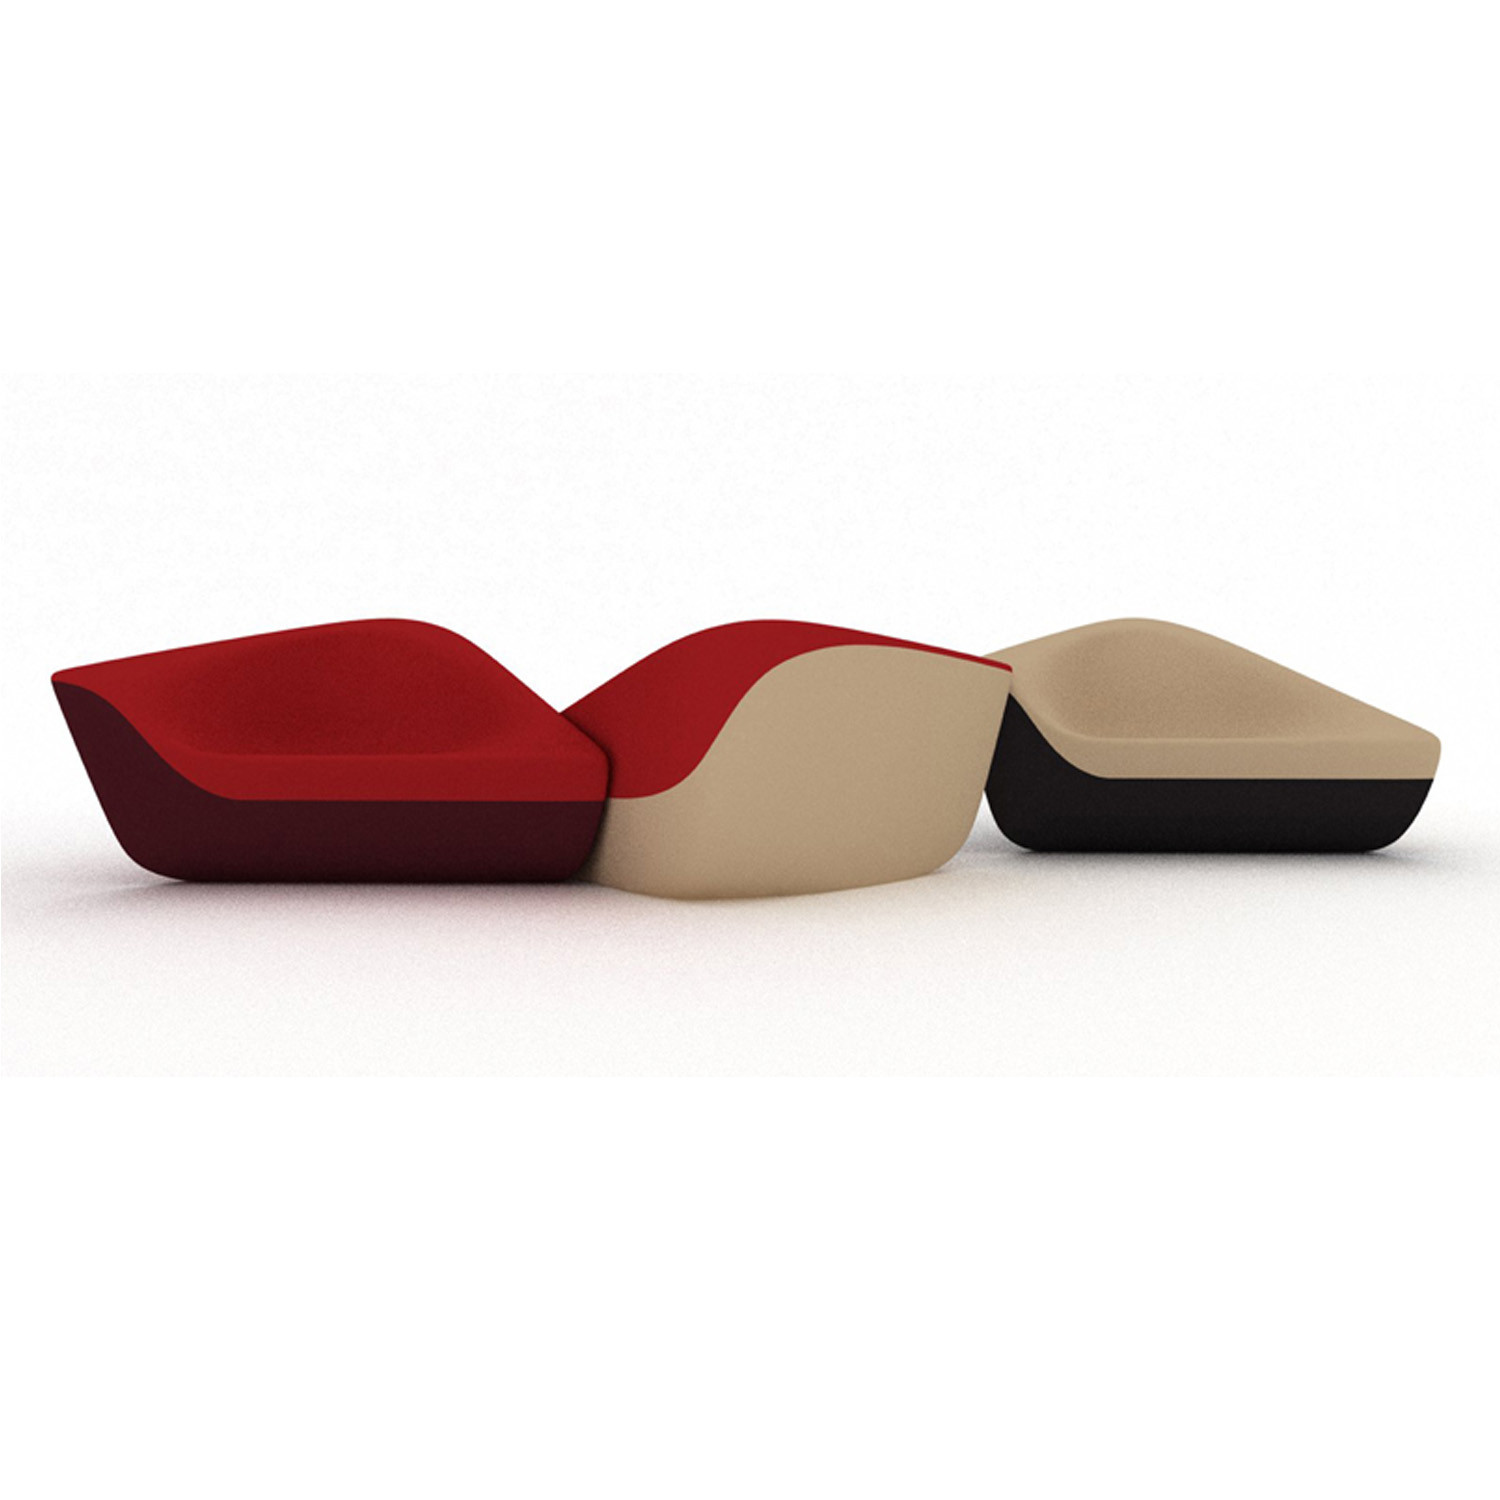 Seating Stones Lounge Chairs